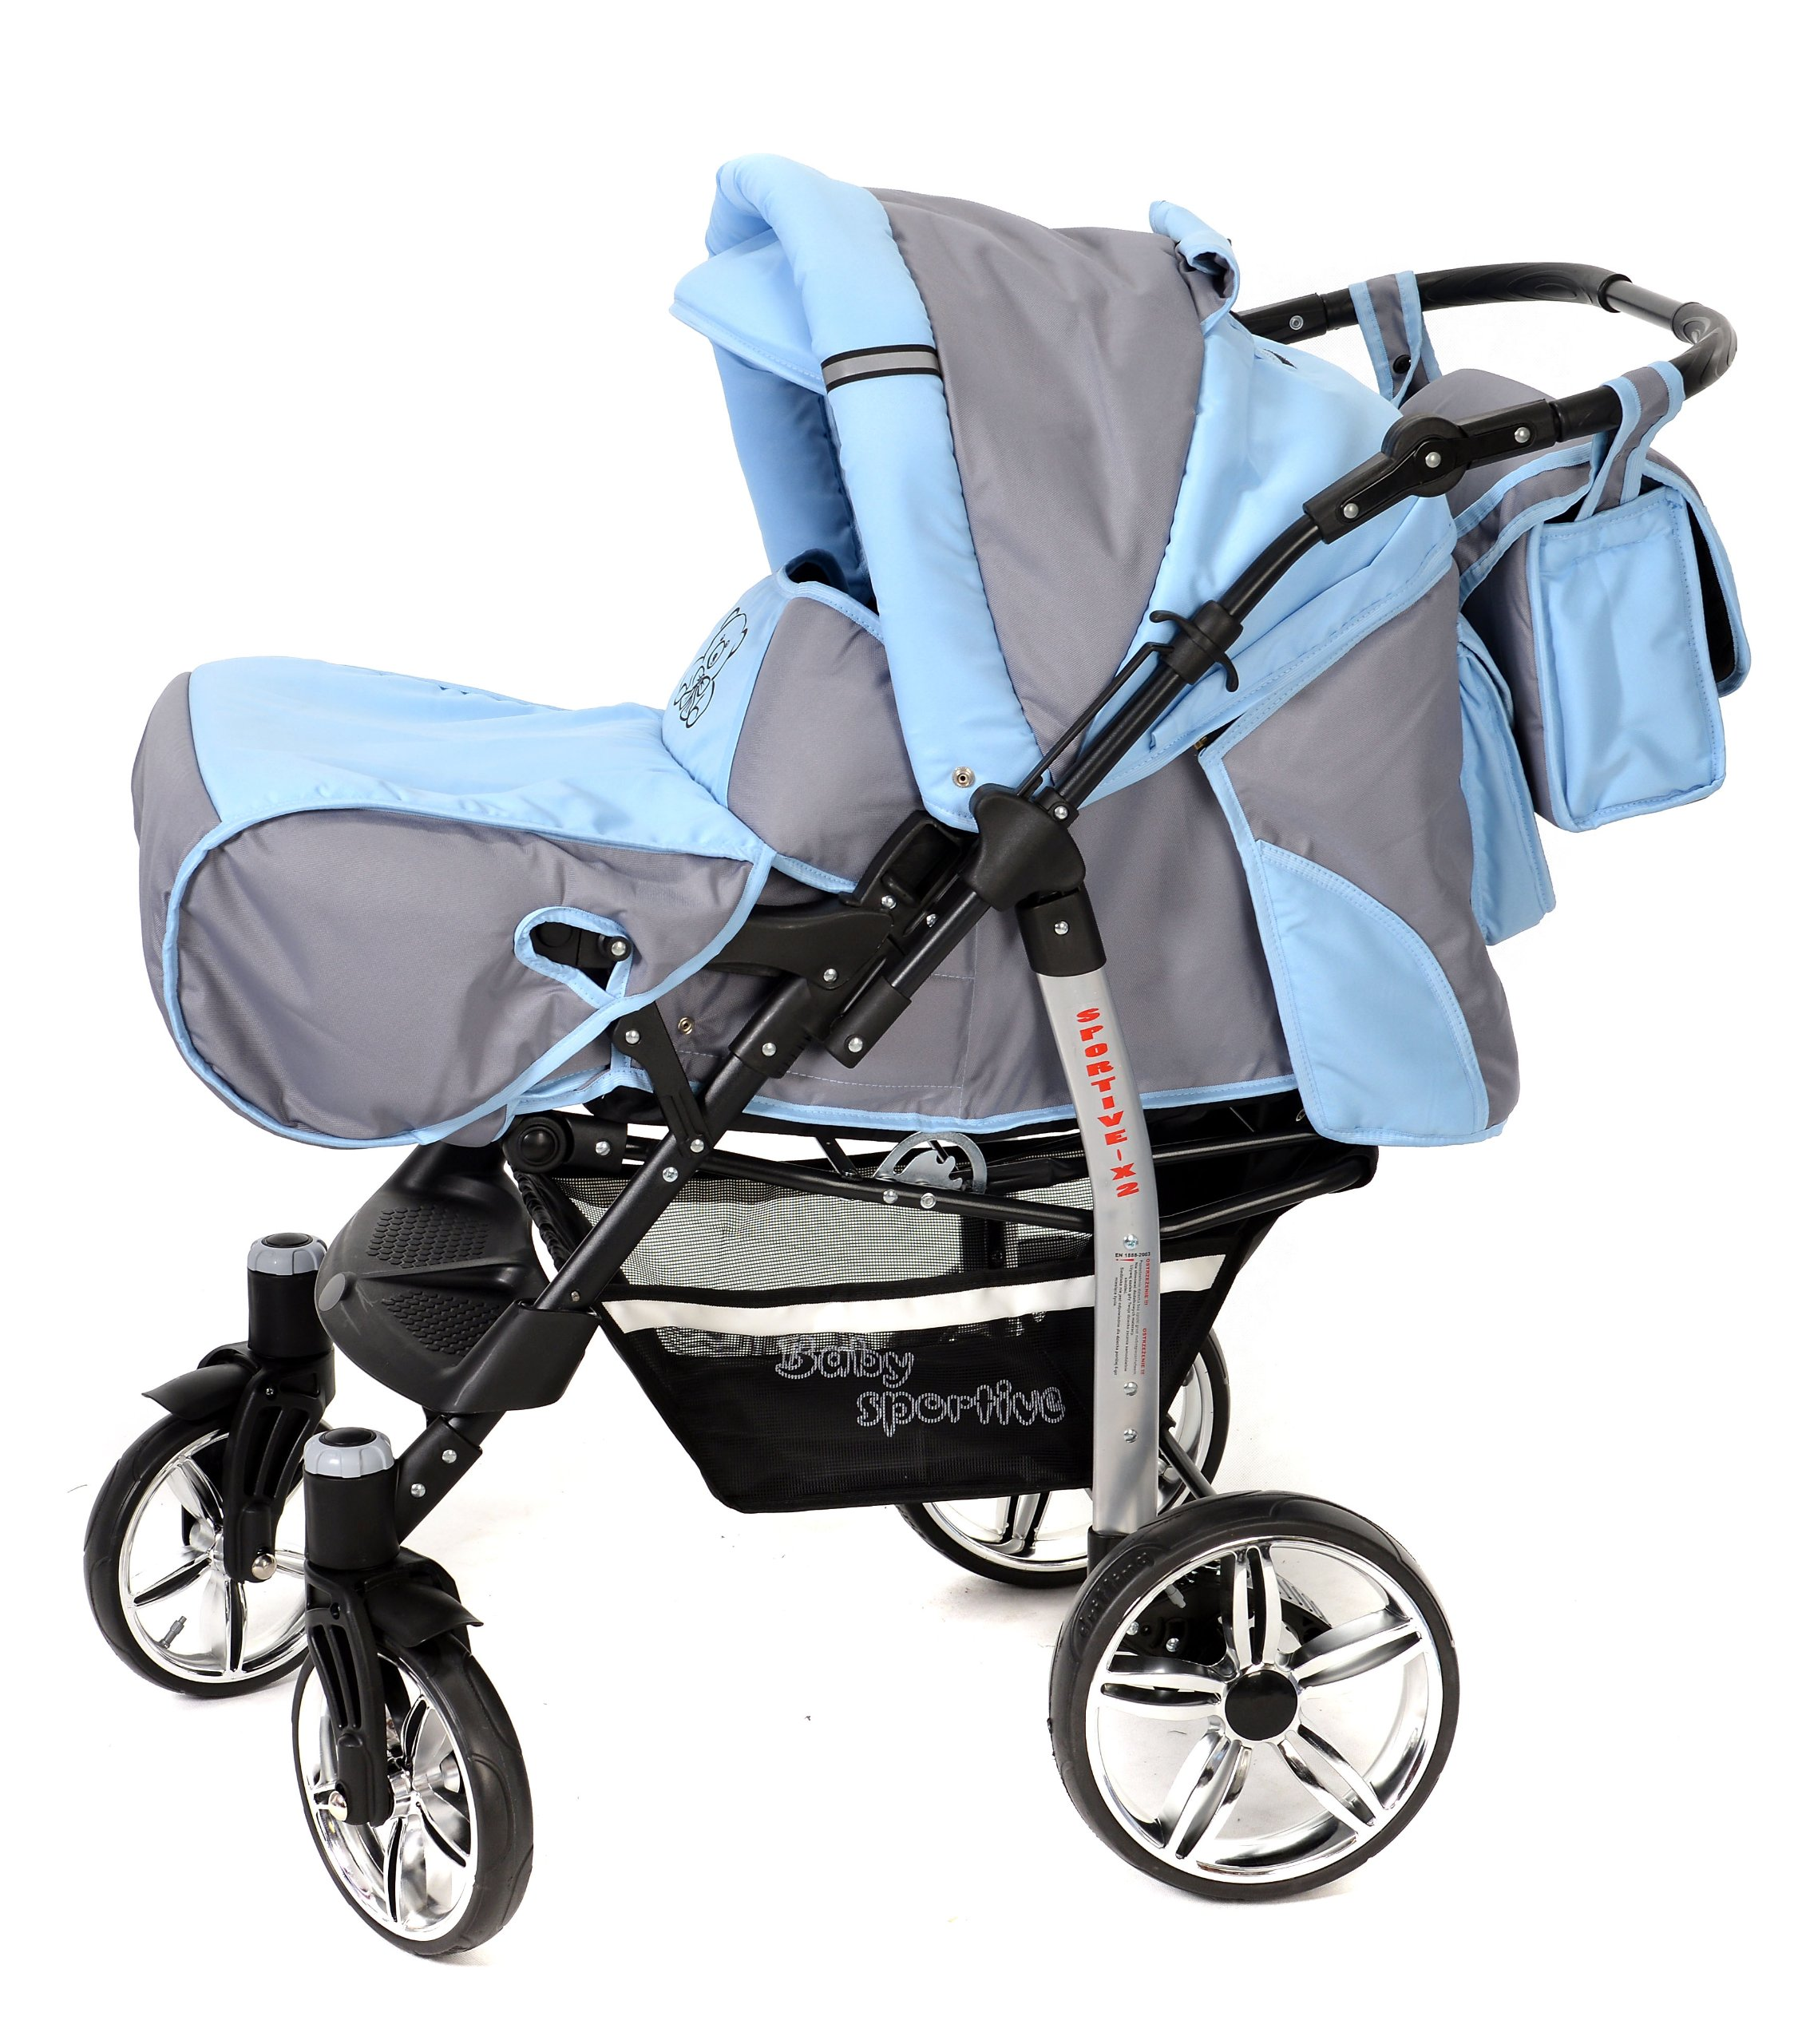 Sportive X2, 3-in-1 Travel System incl. Baby Pram with Swivel Wheels, Car Seat, Pushchair & Accessories (3-in-1 Travel System, Pale Grey & Blue)  3 in 1 Travel System All in One Set - Pram, Car Carrier Seat and Sport Buggy + Accessories: carrier bag, rain protection, mosquito net, changing mat, removable bottle holder and removable tray for your child's bits and pieces Suitable from birth, Easy Quick Folding System; Large storage basket; Turnable handle bar that allows to face or rear the drive direction; Quick release rear wheels for easy cleaning after muddy walks Front lockable 360o swivel wheels for manoeuvrability , Small sized when folded, fits into many small car trunks, Carry-cot with a removable hood, Reflective elements for better visibility 3